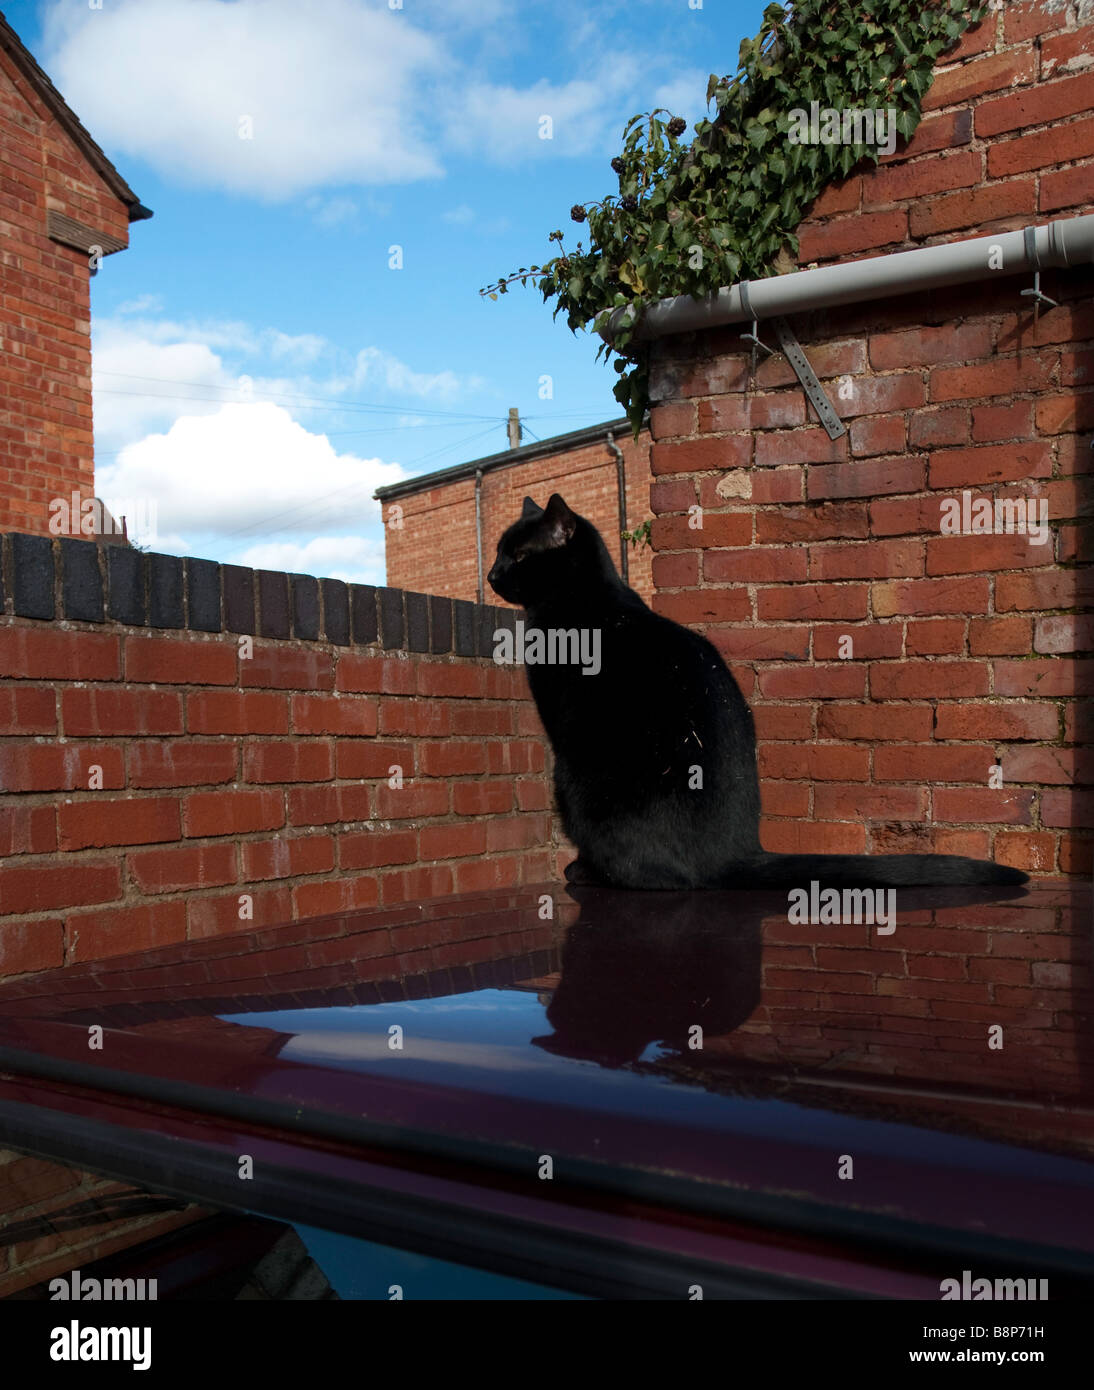 A black tomcat sitting on a car roof - Stock Image